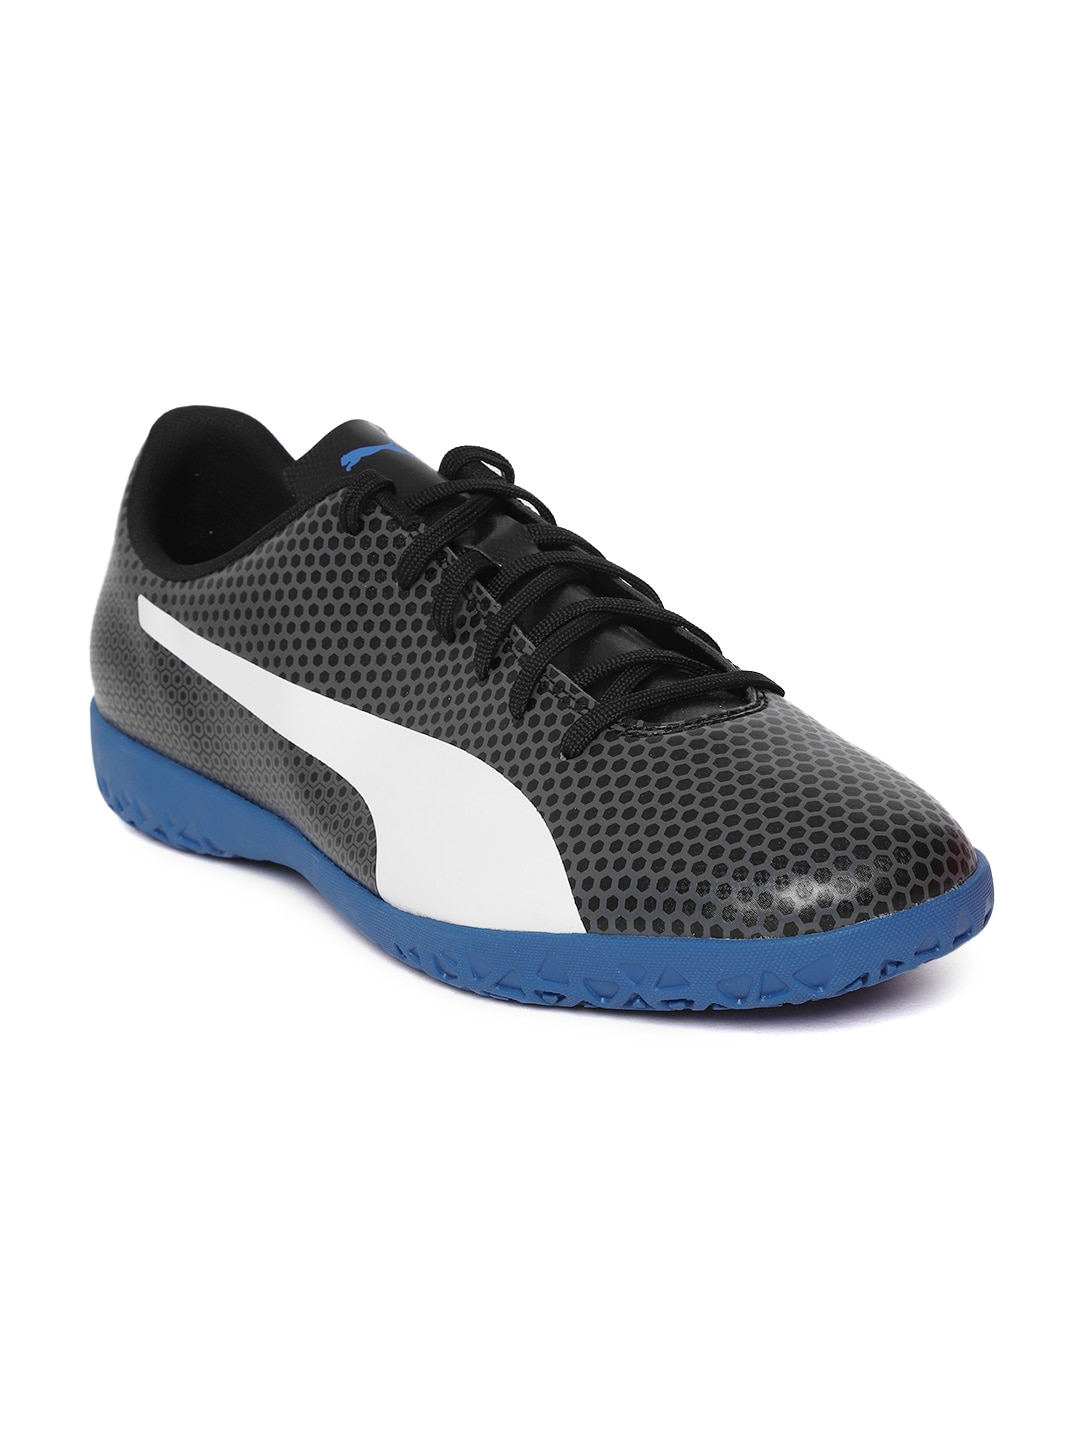 b487071ae8e106 Puma Shoes - Buy Puma Shoes for Men   Women Online in India